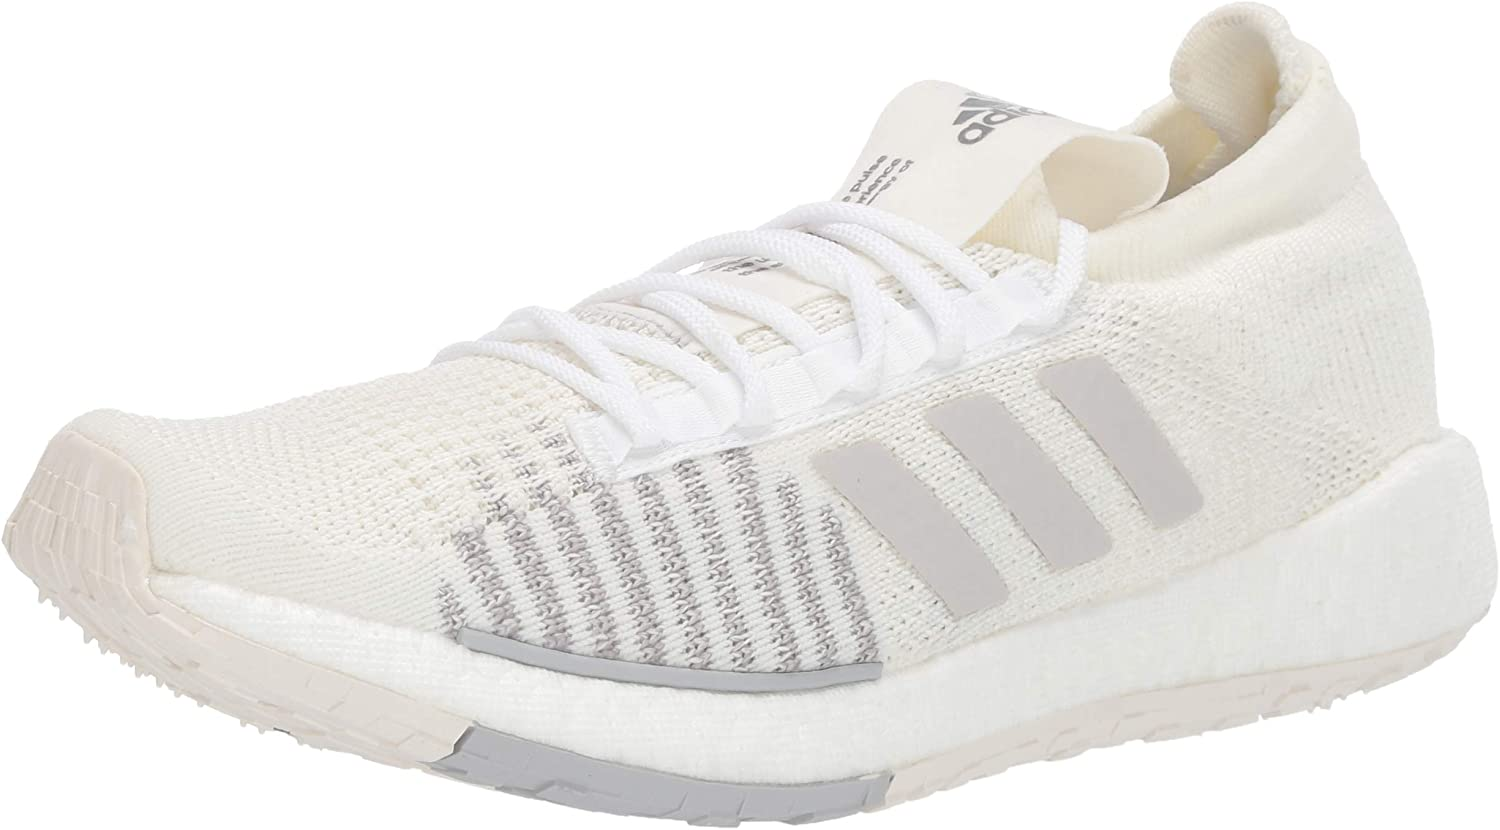 de primera categoría Explícitamente Ofensa  Adidas Mens Pulseboost HD Shoes Running: Amazon.ca: Shoes & Handbags